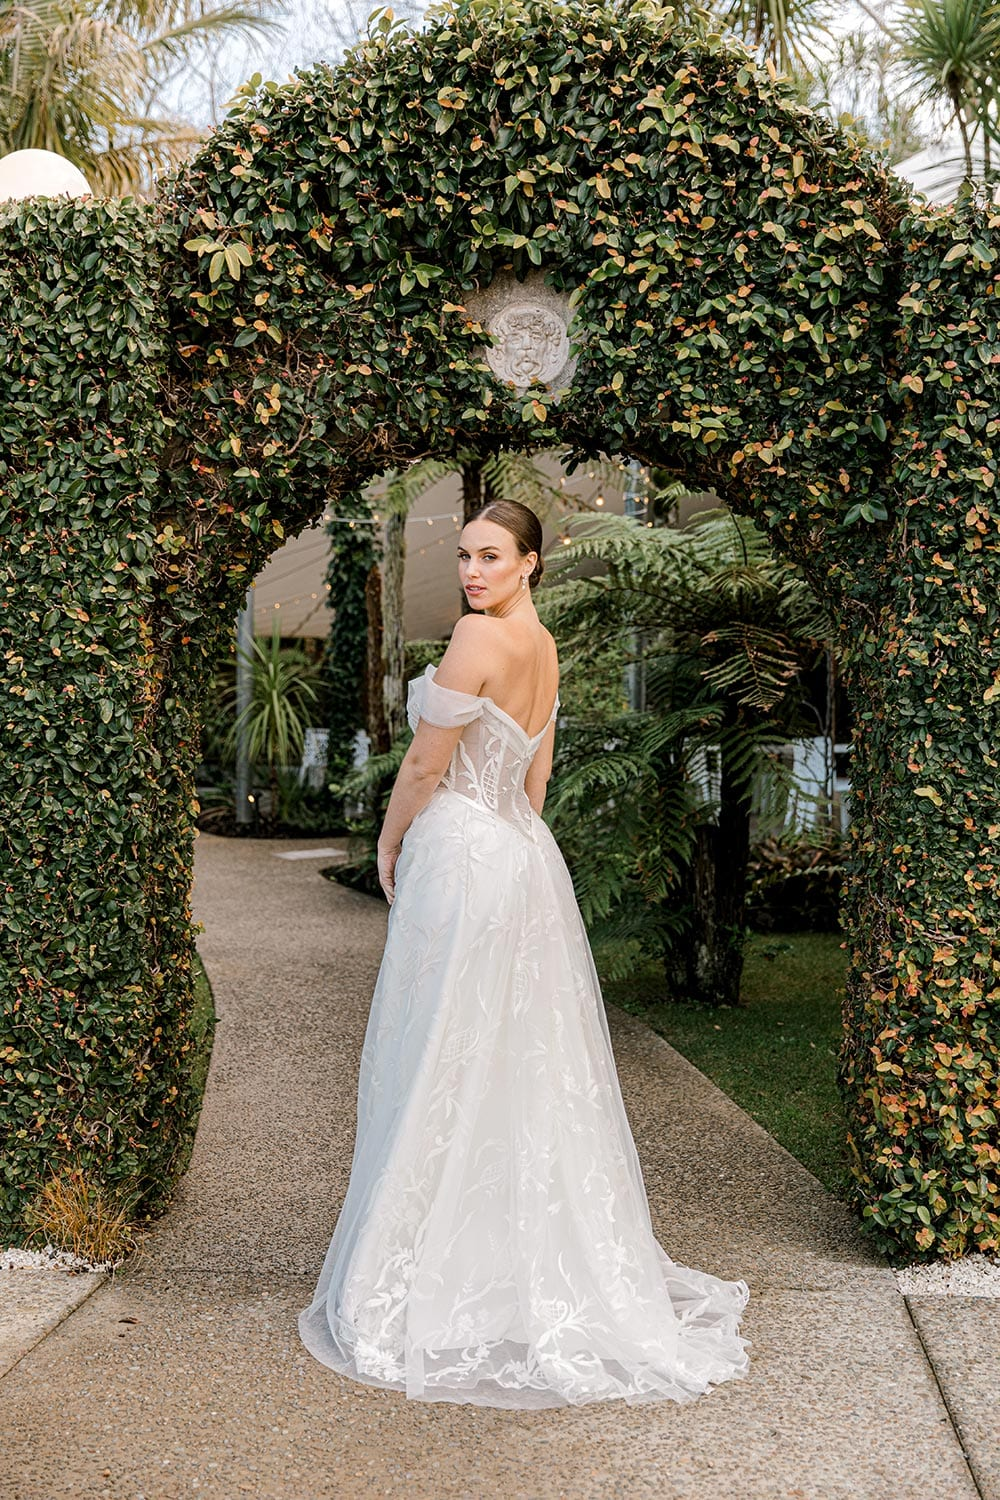 Zoe wedding dress by Vinka Design - a romantic & dreamy off-shoulder gown with a structured, boned bodice, a full lace & tulle skirt. Semi-sheer bodice with tulle off-shoulder detailing and satin belt. Worn in green garden archway, model looking back over shoulder showing train.